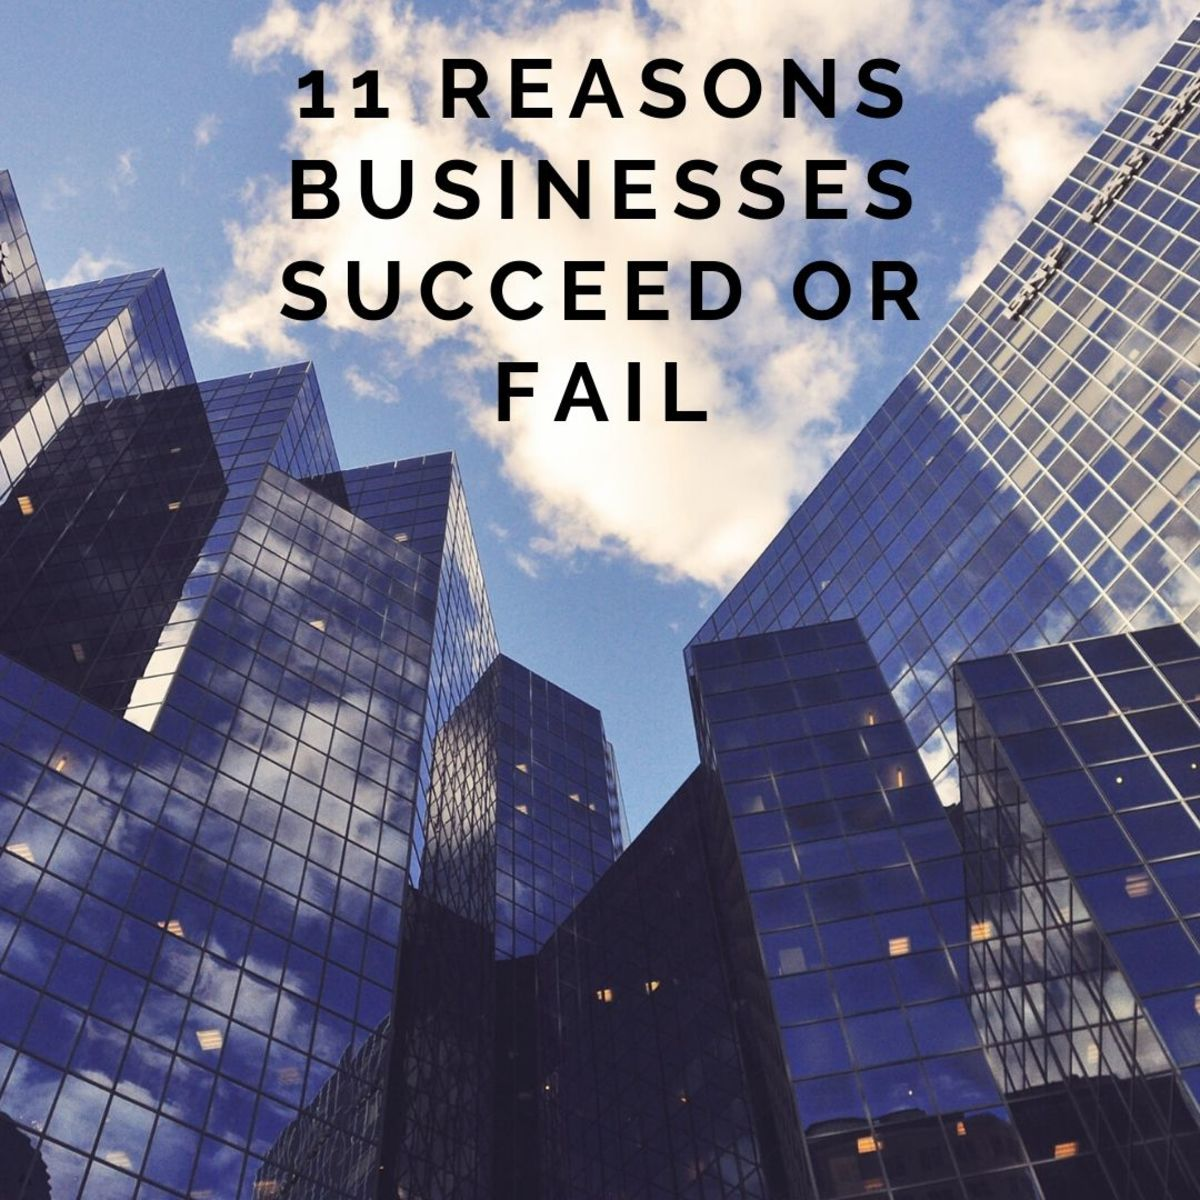 11 Reasons for Business Success or Failure